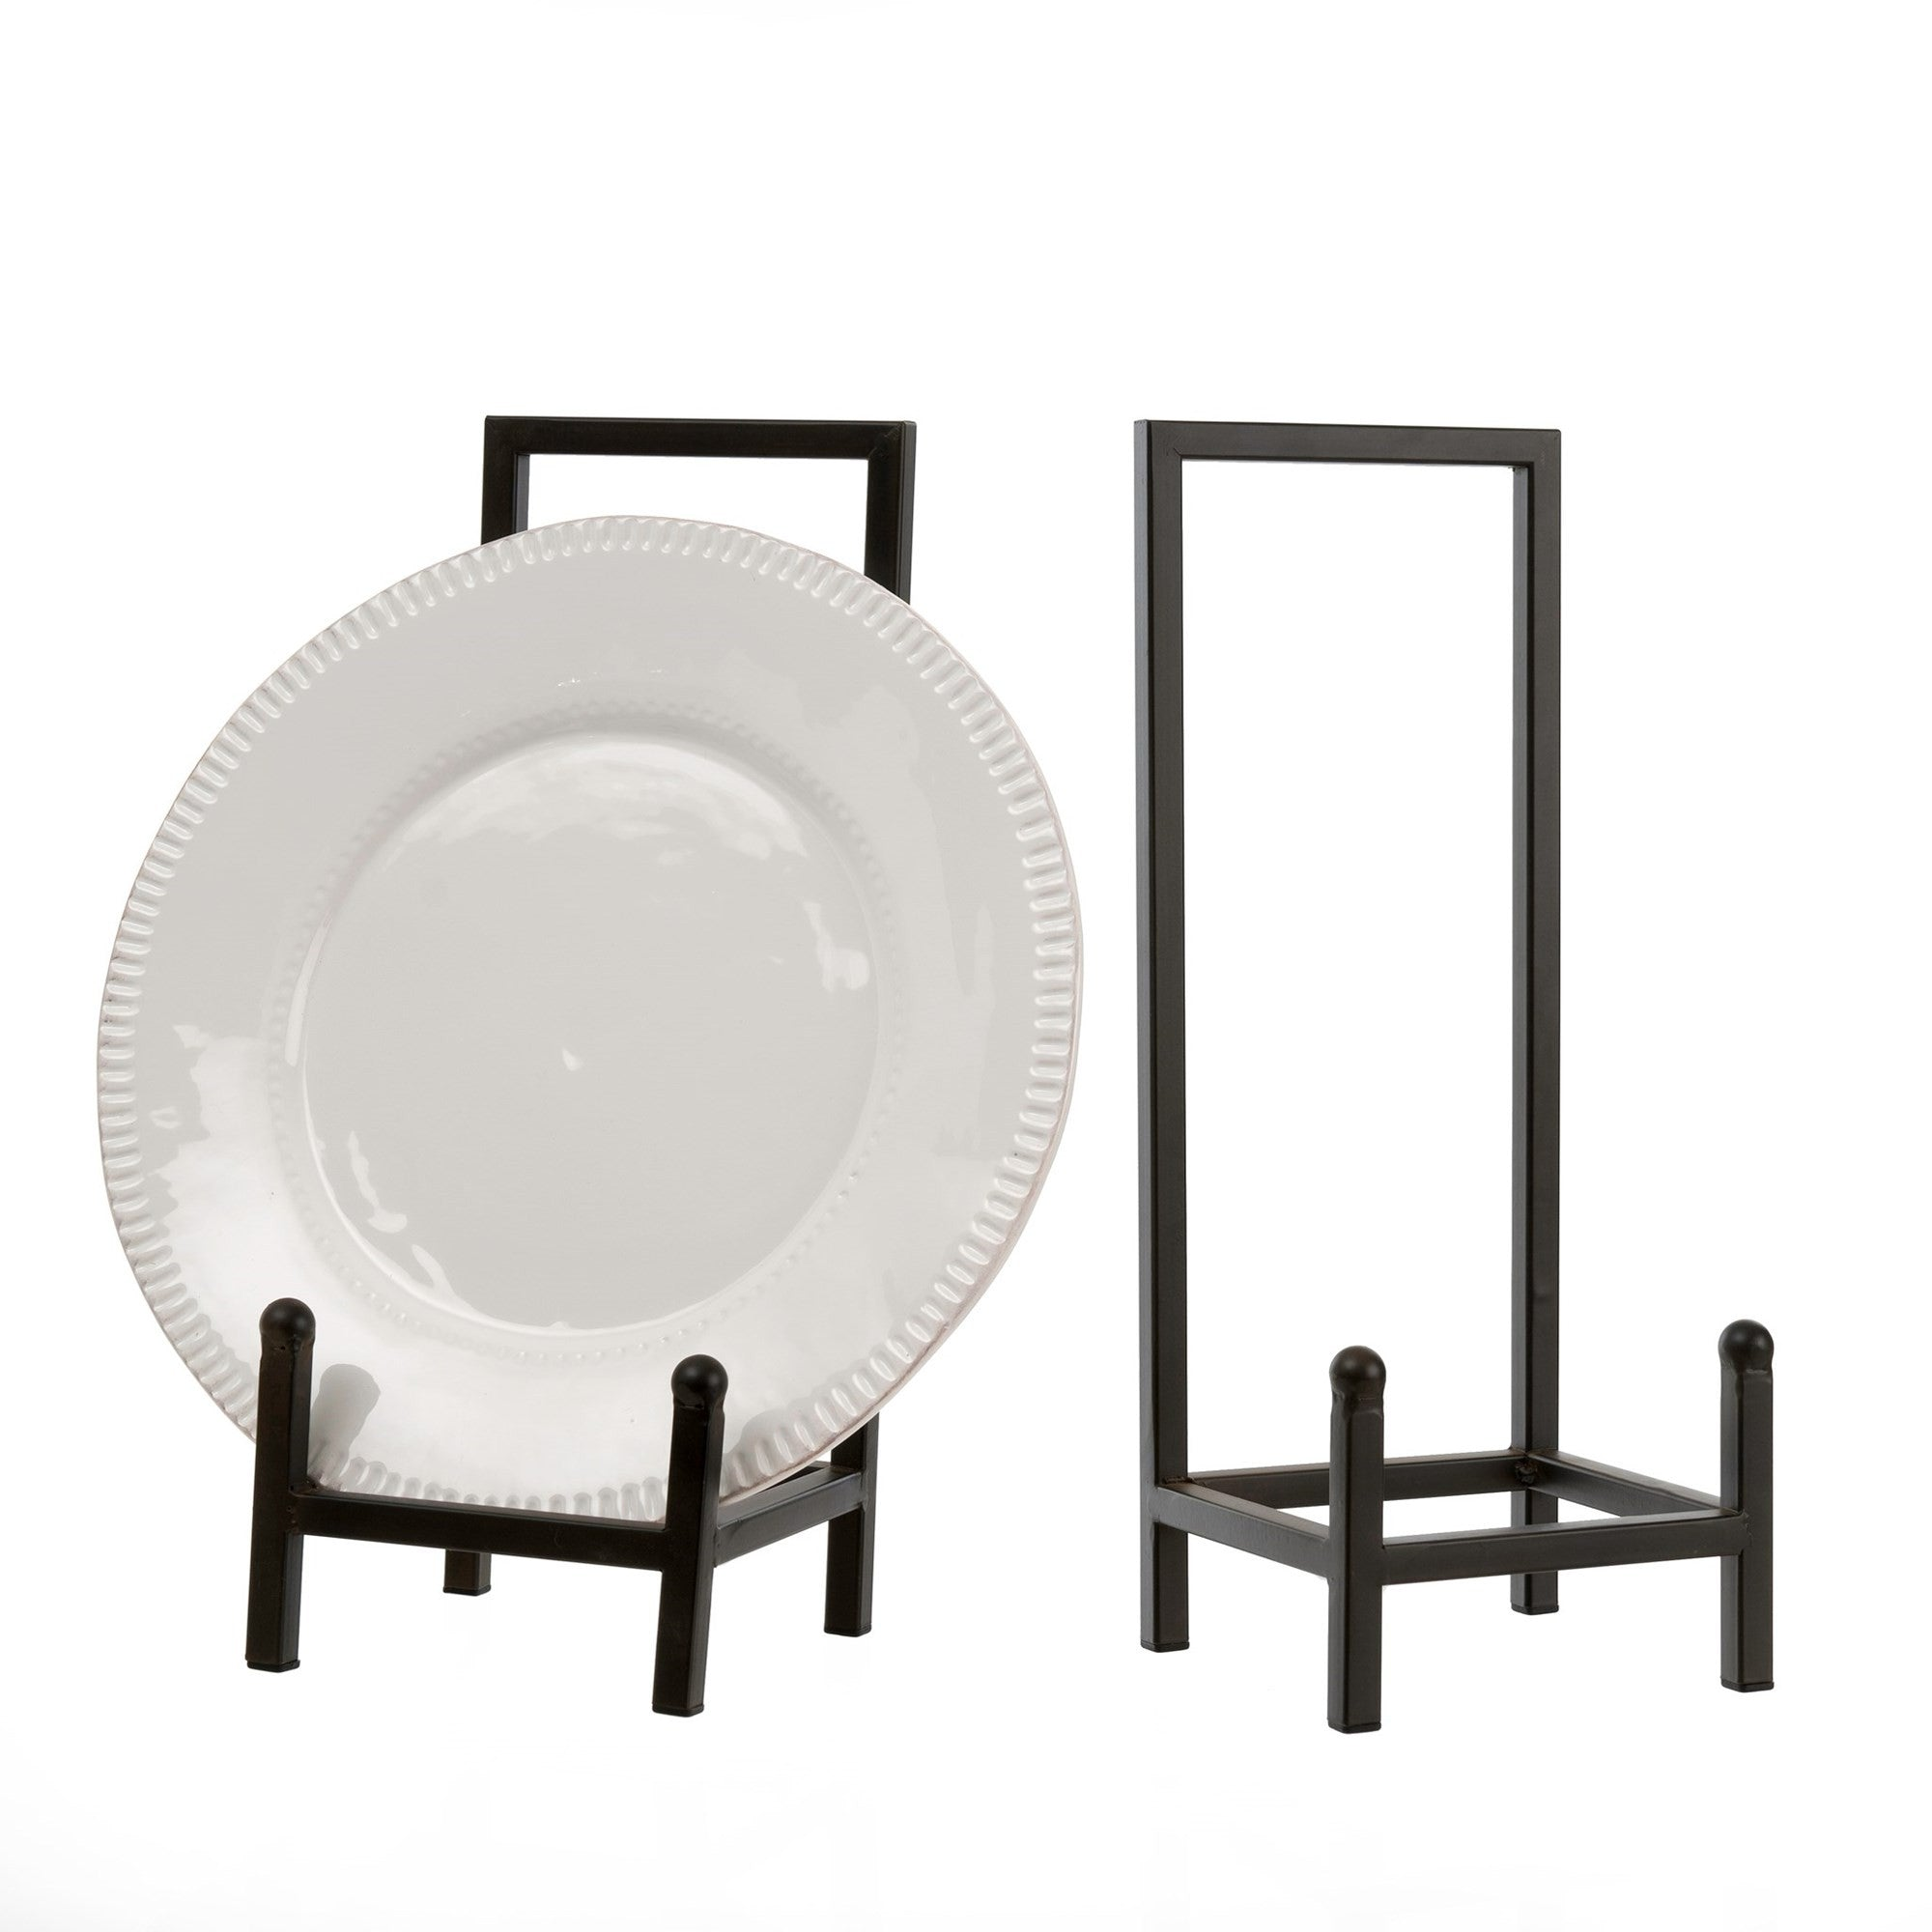 Mount antique plates funky frames or prized pieces with sleek and simple metal stands. L 6.25\  W 6\  H 16\   sc 1 st  Pretty Grit & Plate Stand \u2013 Pretty Grit